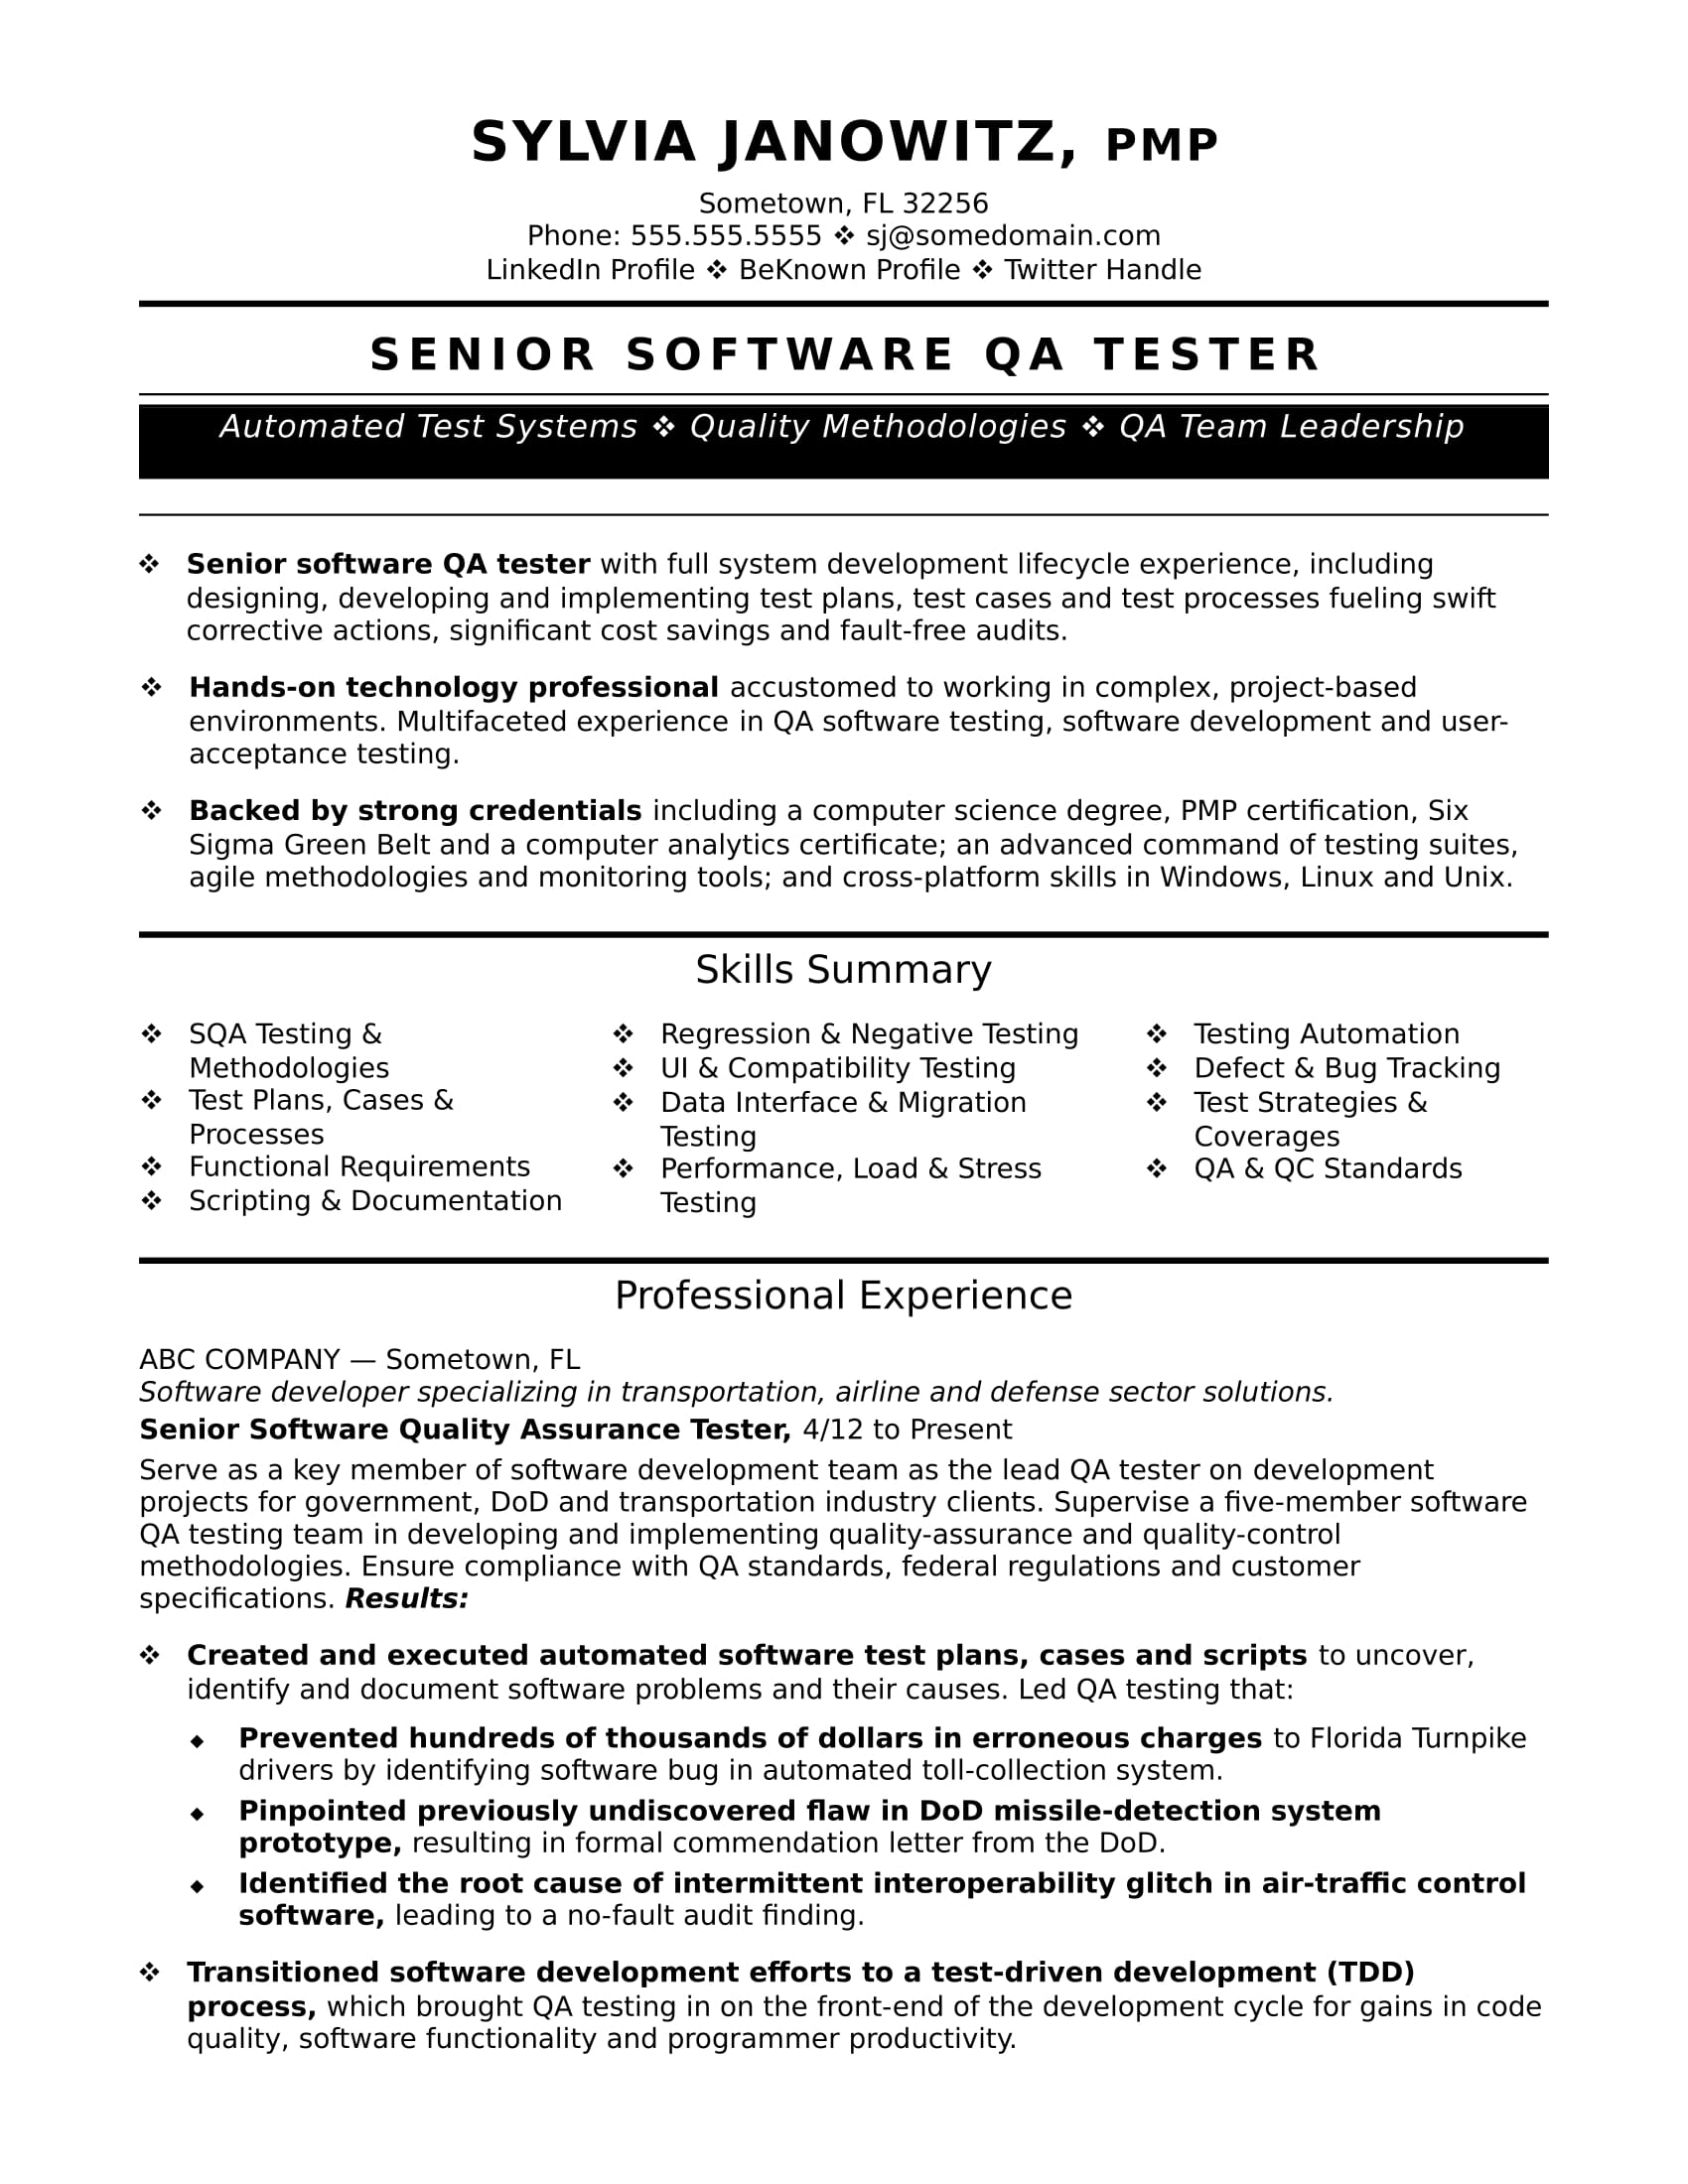 experienced qa software tester resume sample monster testing for year experience banking Resume Software Testing Resume For 3 Year Experience